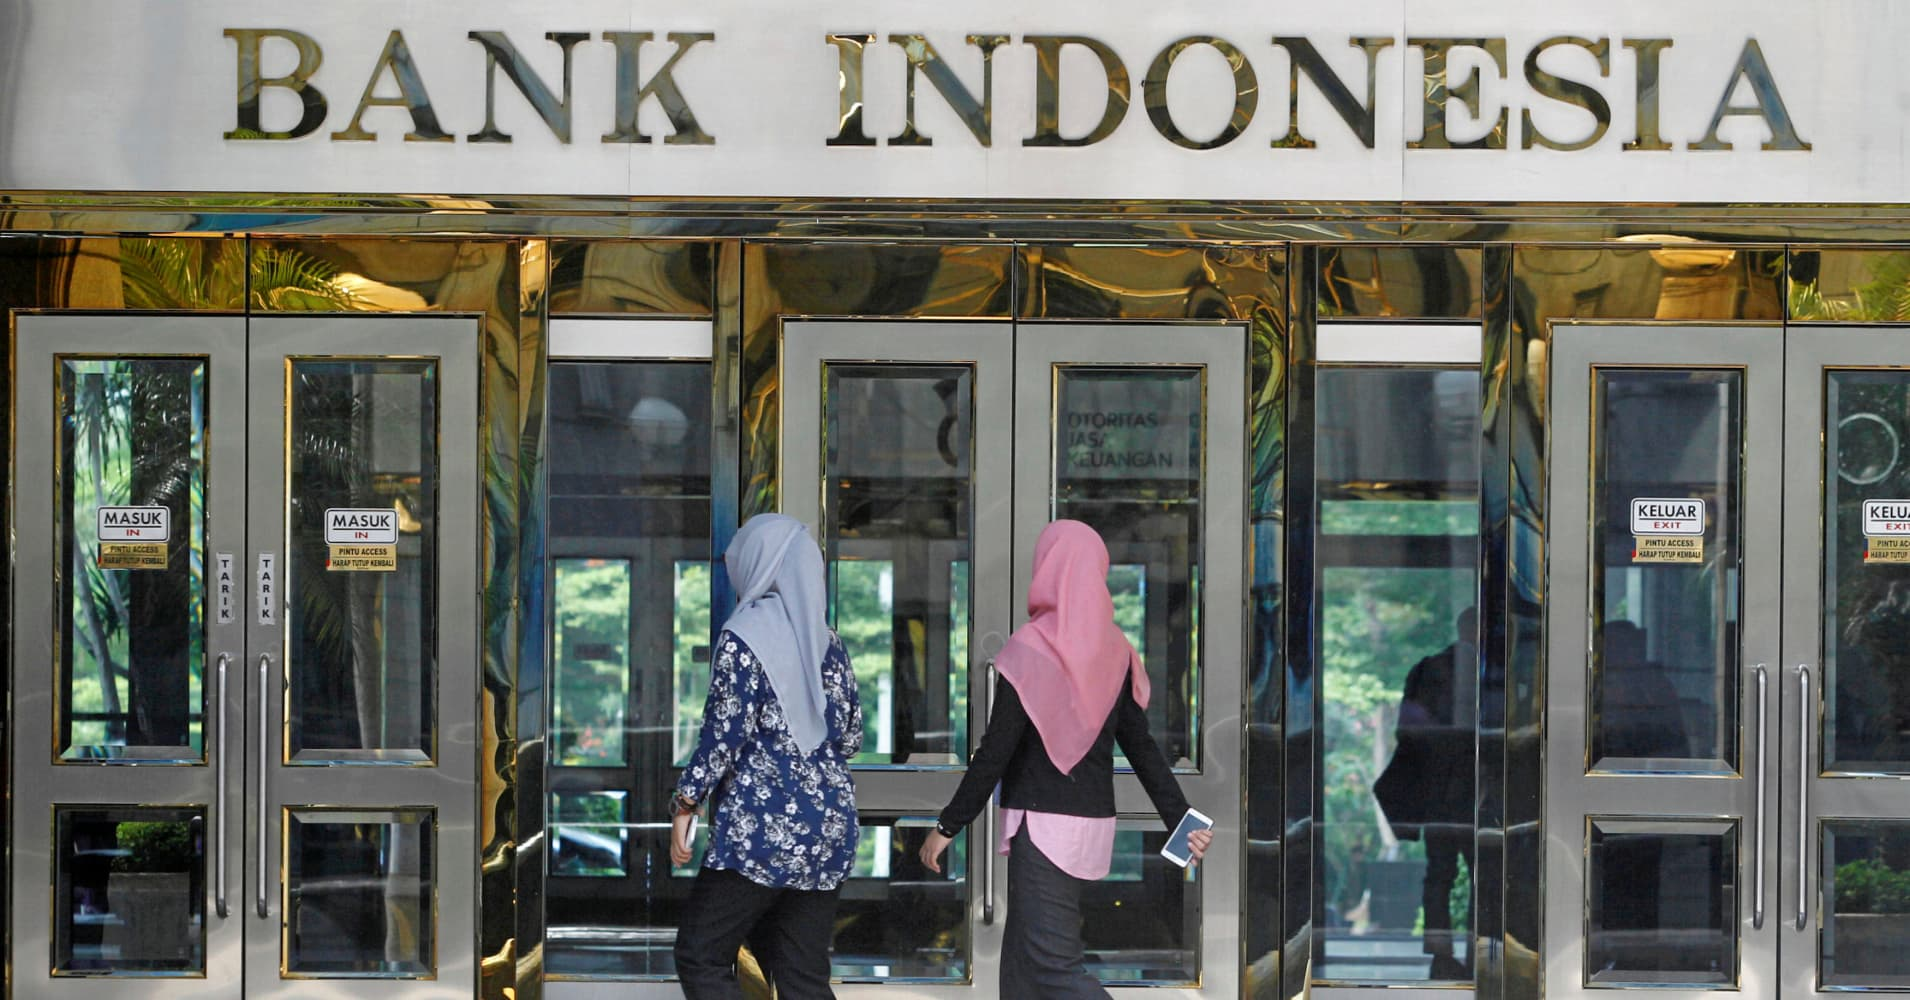 Bank Indonesia reviews policy on rupiah weakness, Federal